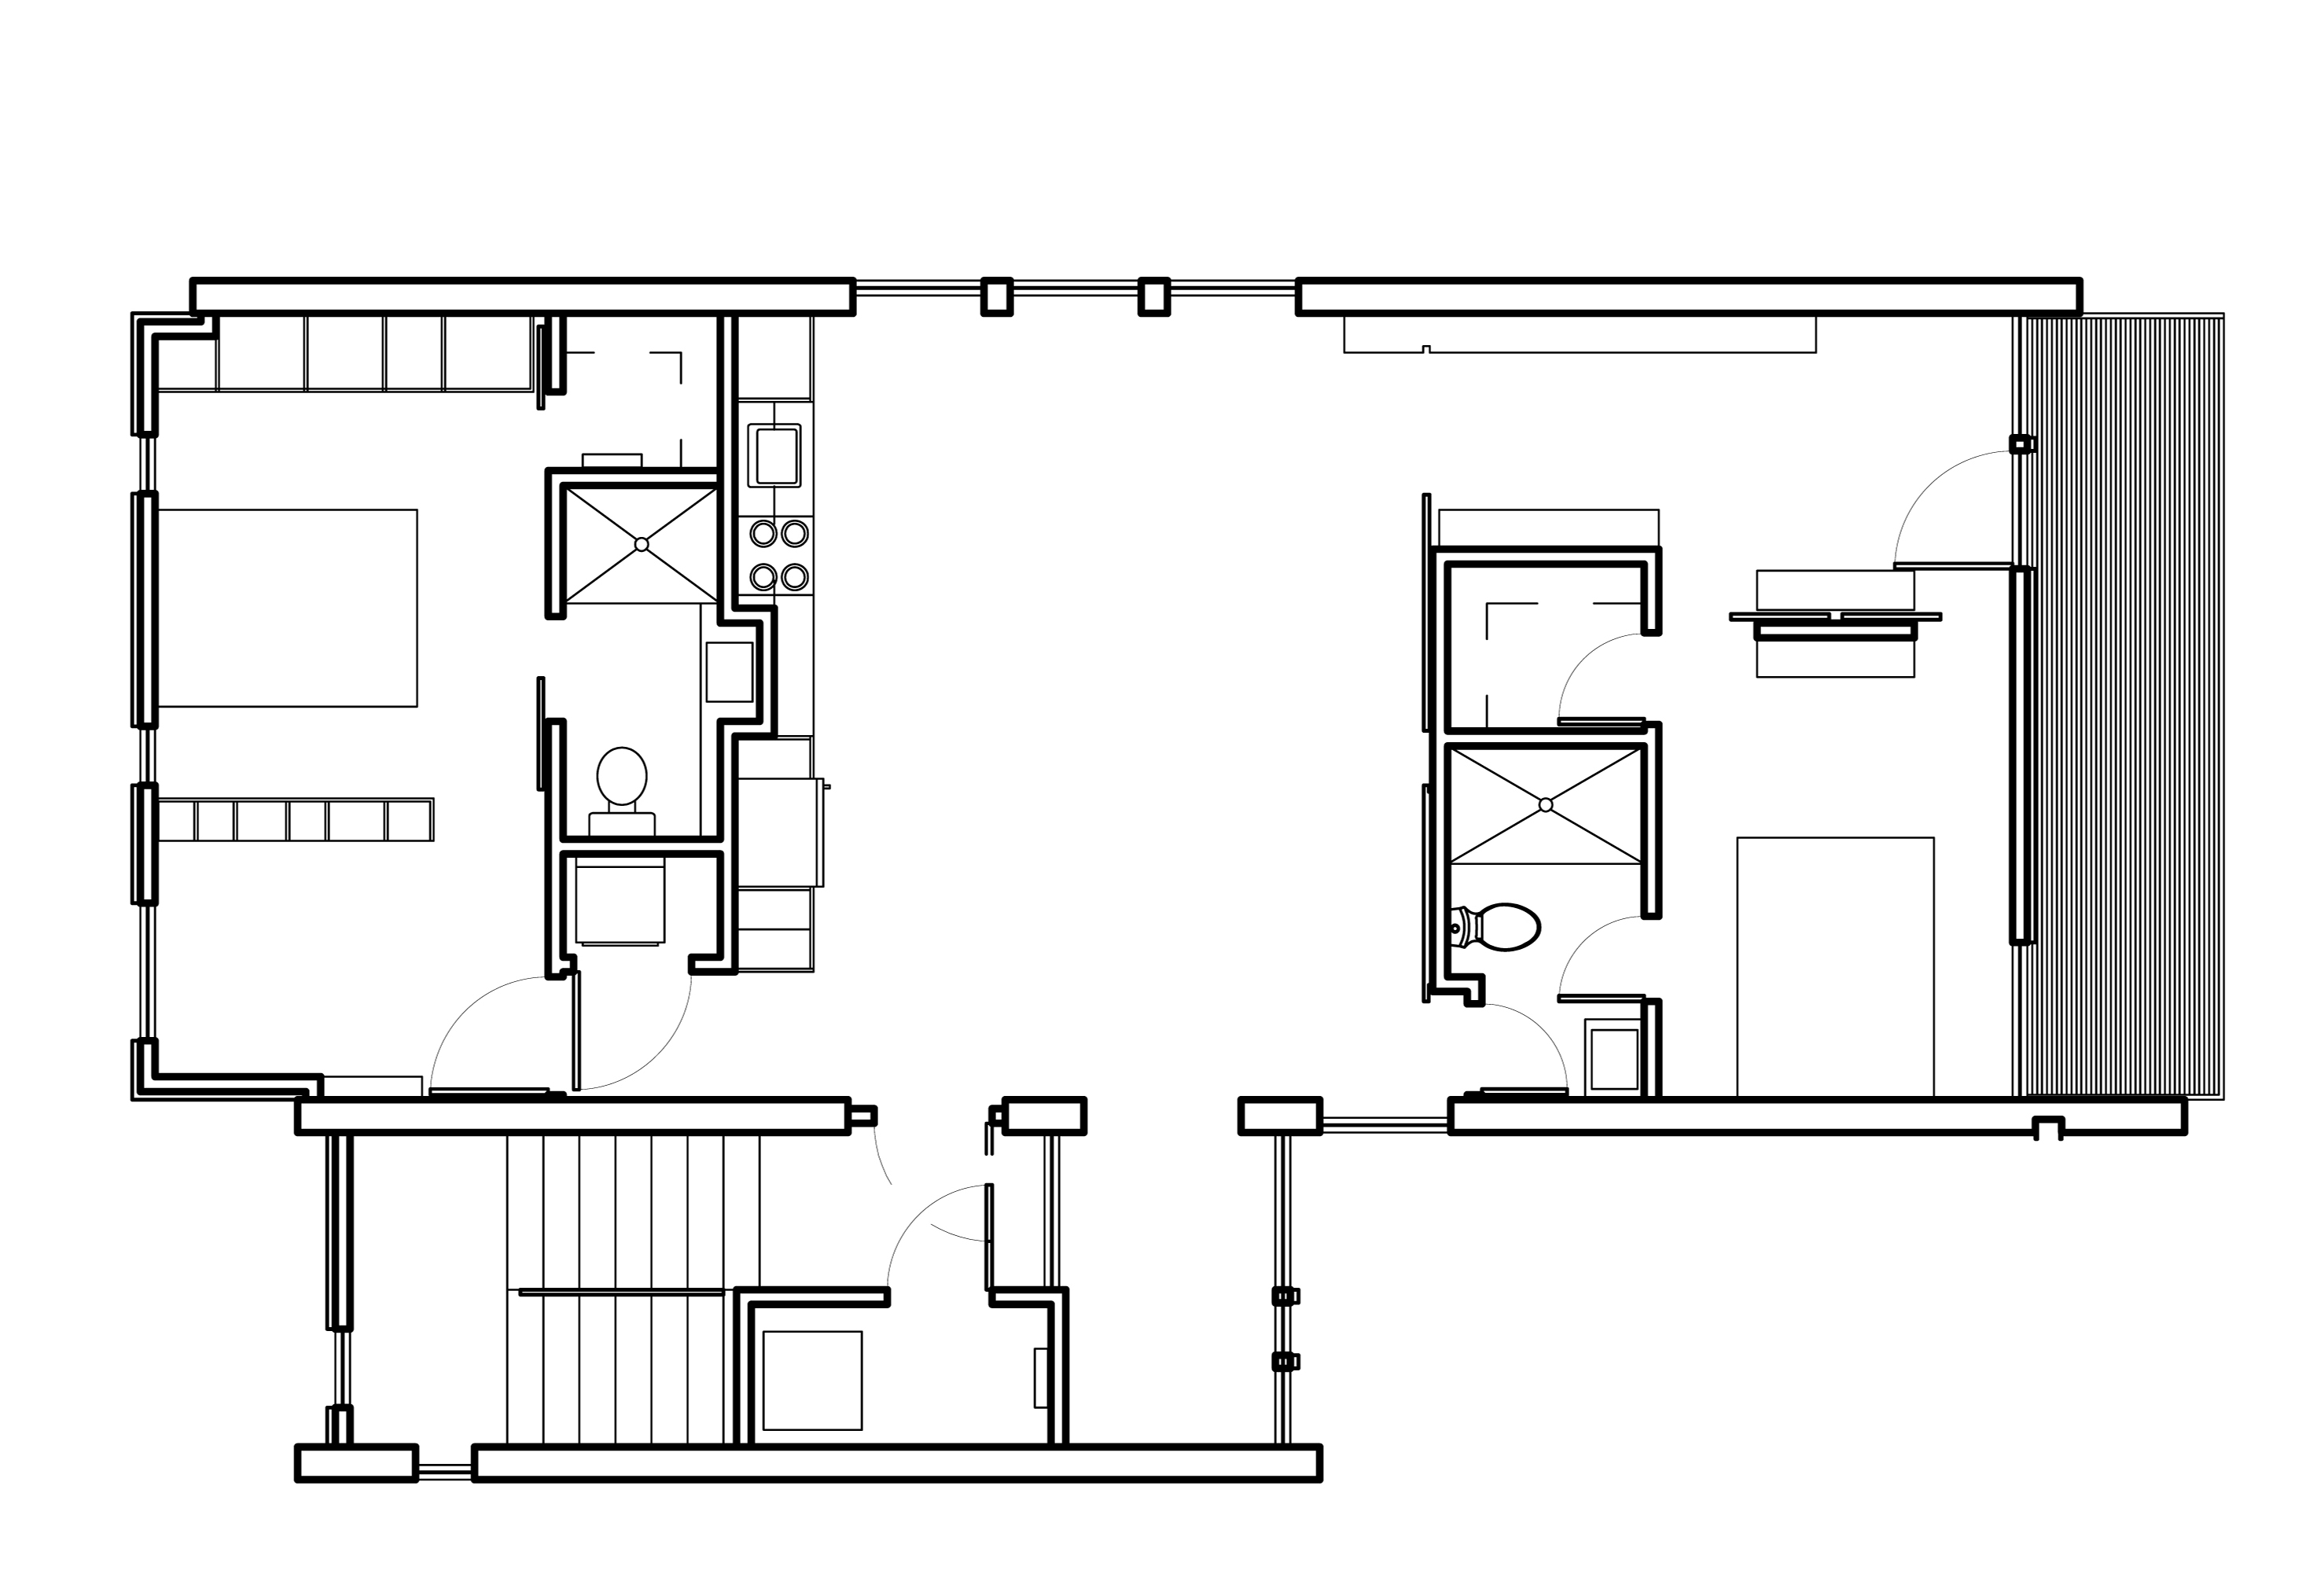 Home Design Floor Plans Home Design Ideas Small Modern House